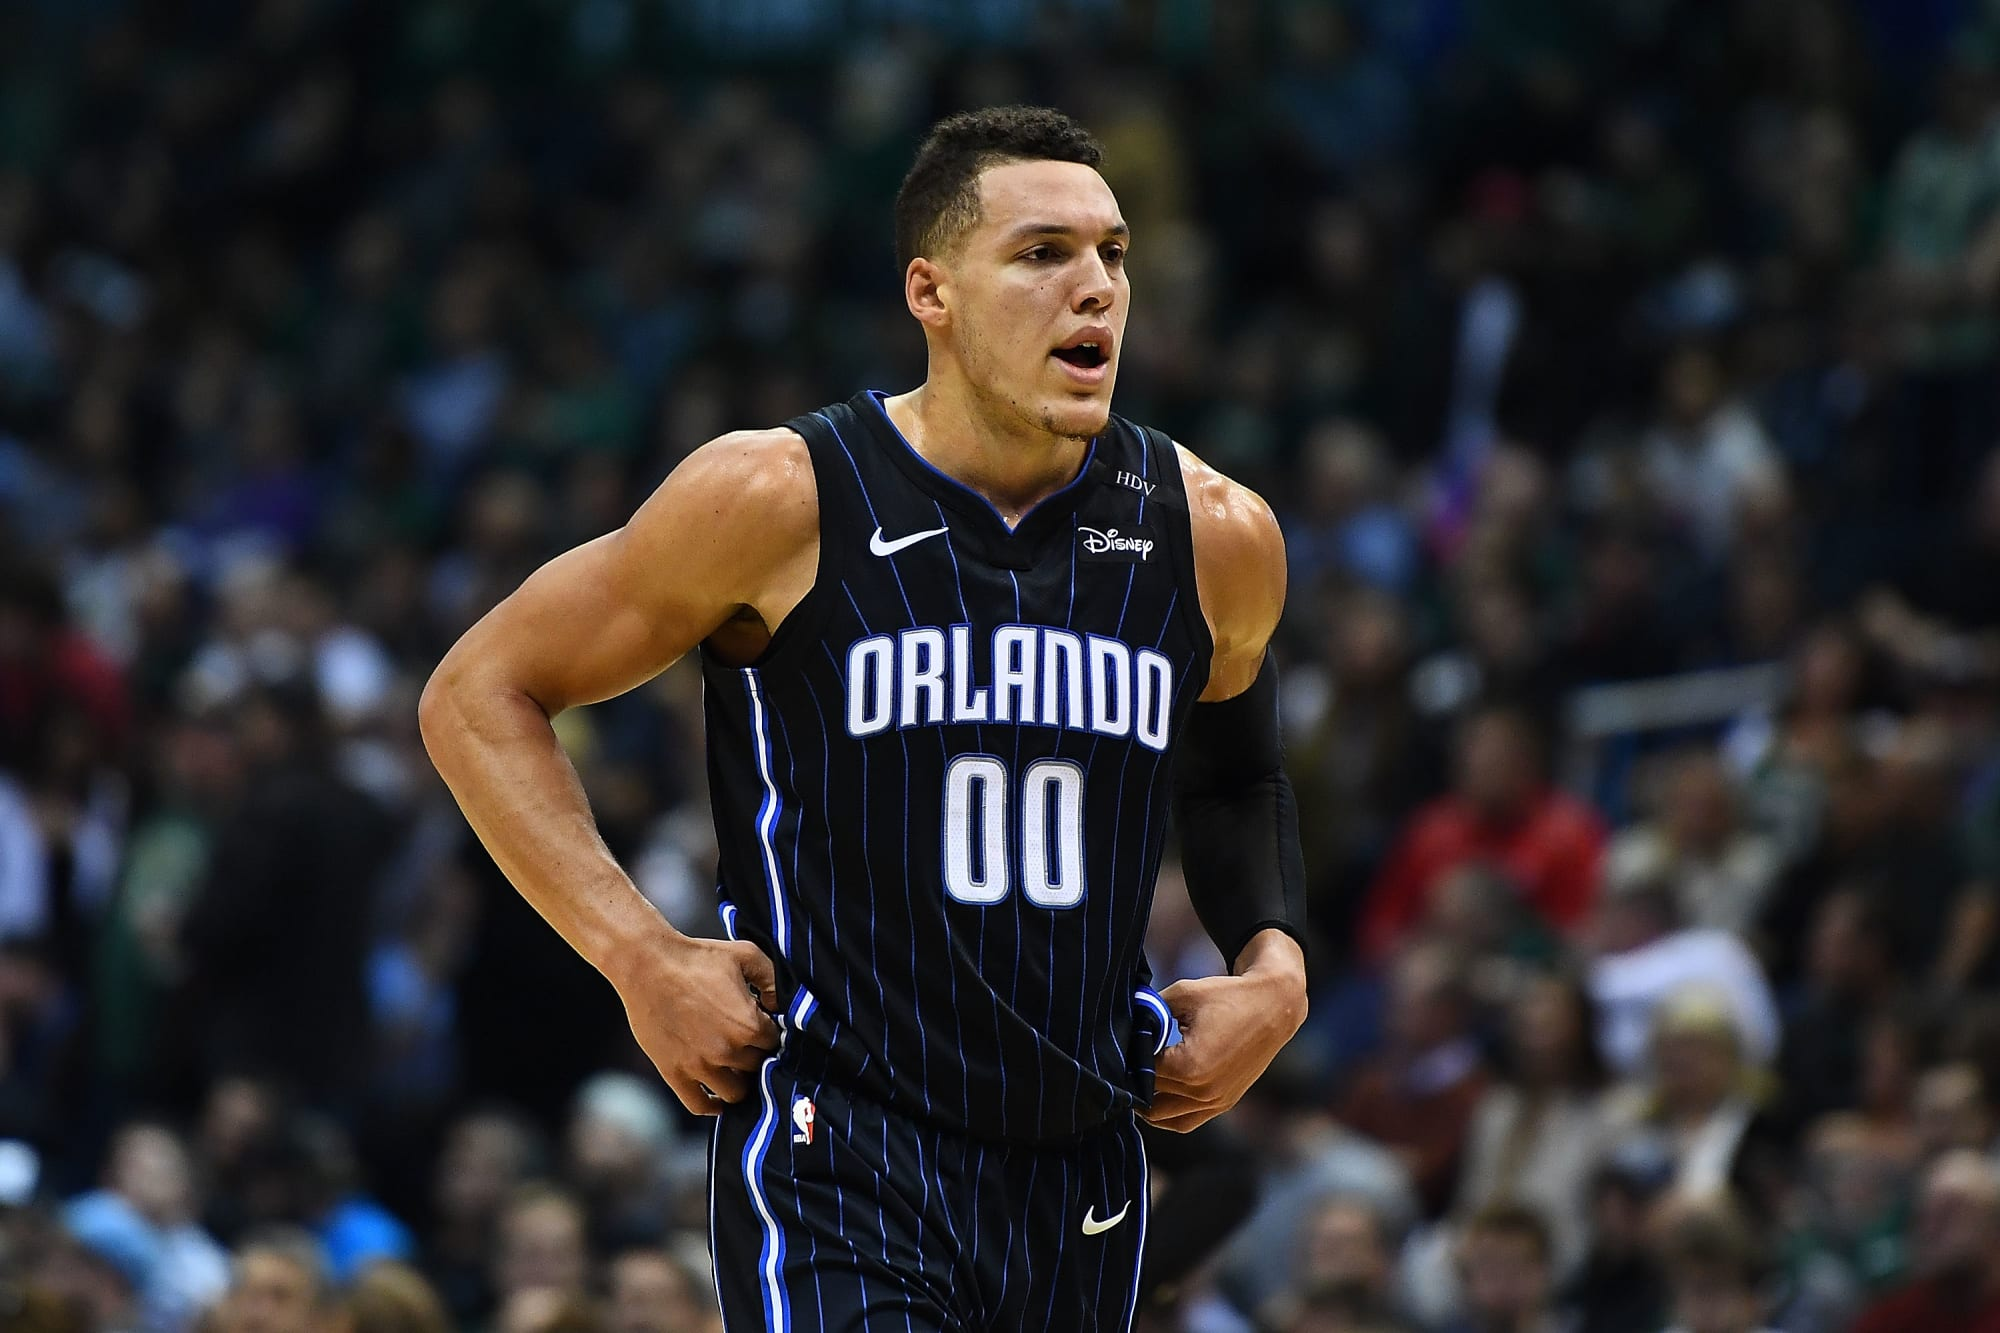 Orlando Magic Rumors: Orlando Magic staying patient with Aaron Gordon early